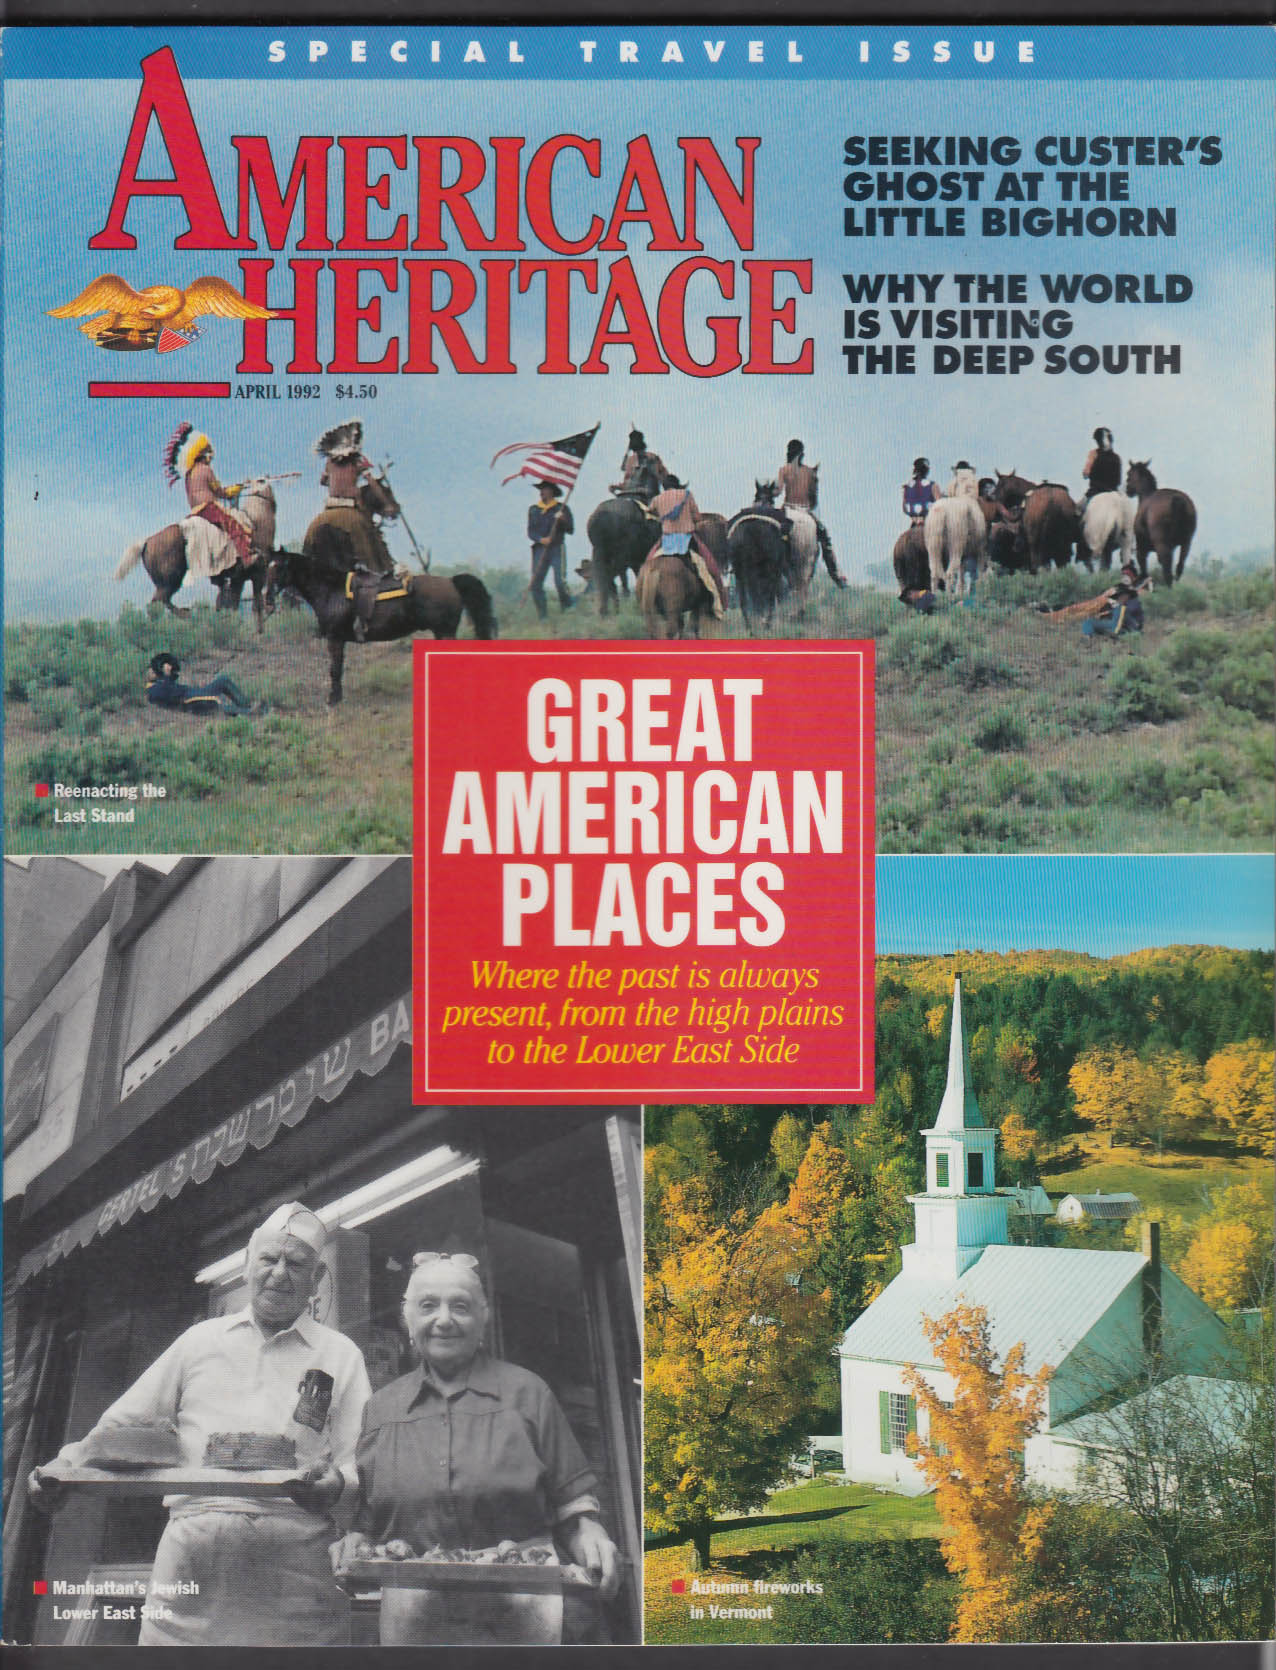 AMERICAN HERITAGE Jewish Lower East Side Little Bighorn Custer Slavery + 4 1992